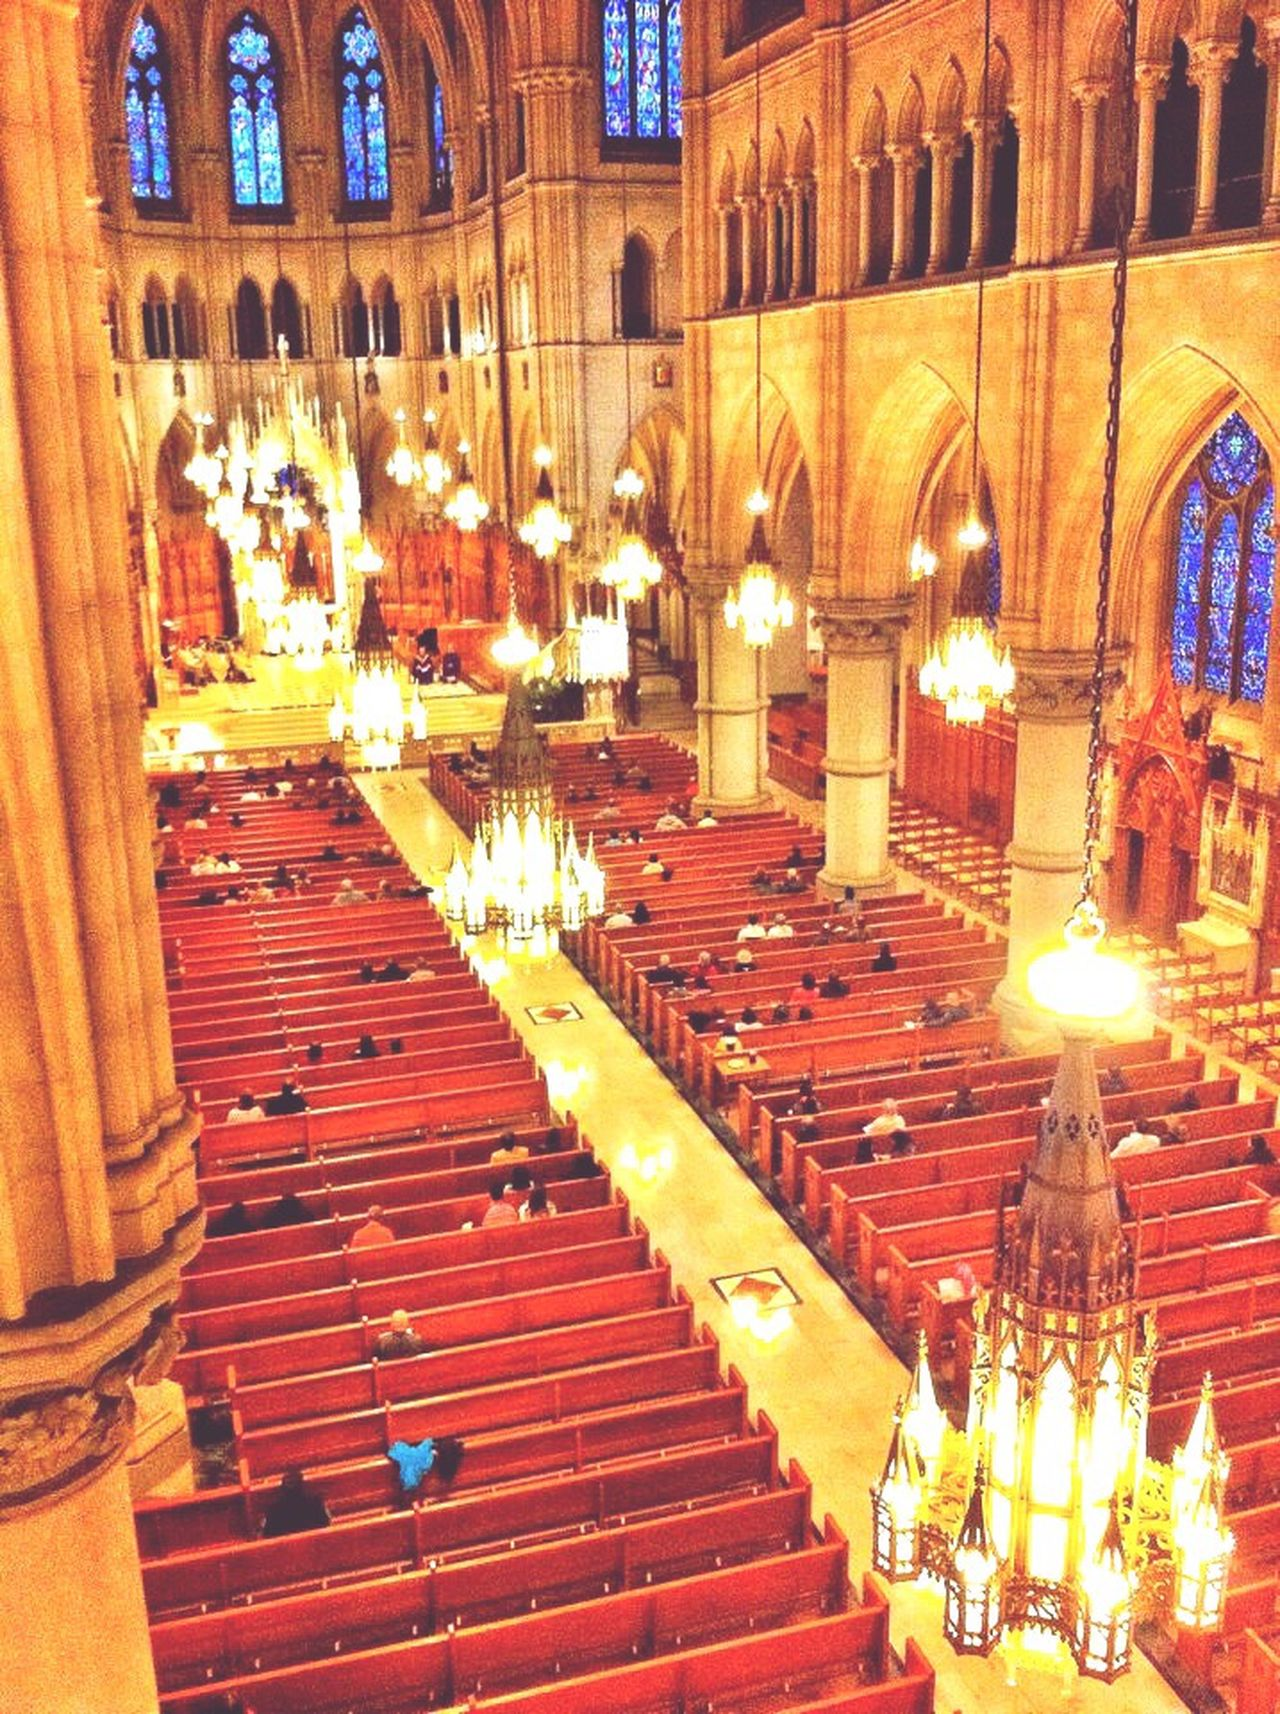 Cathedral Basilica of the Sacred Heart Cathedral Basilica Newark Newark Nj  Nj Newark Eastern Seaboard New Jersey Architecture Chandeliers Pews Worship